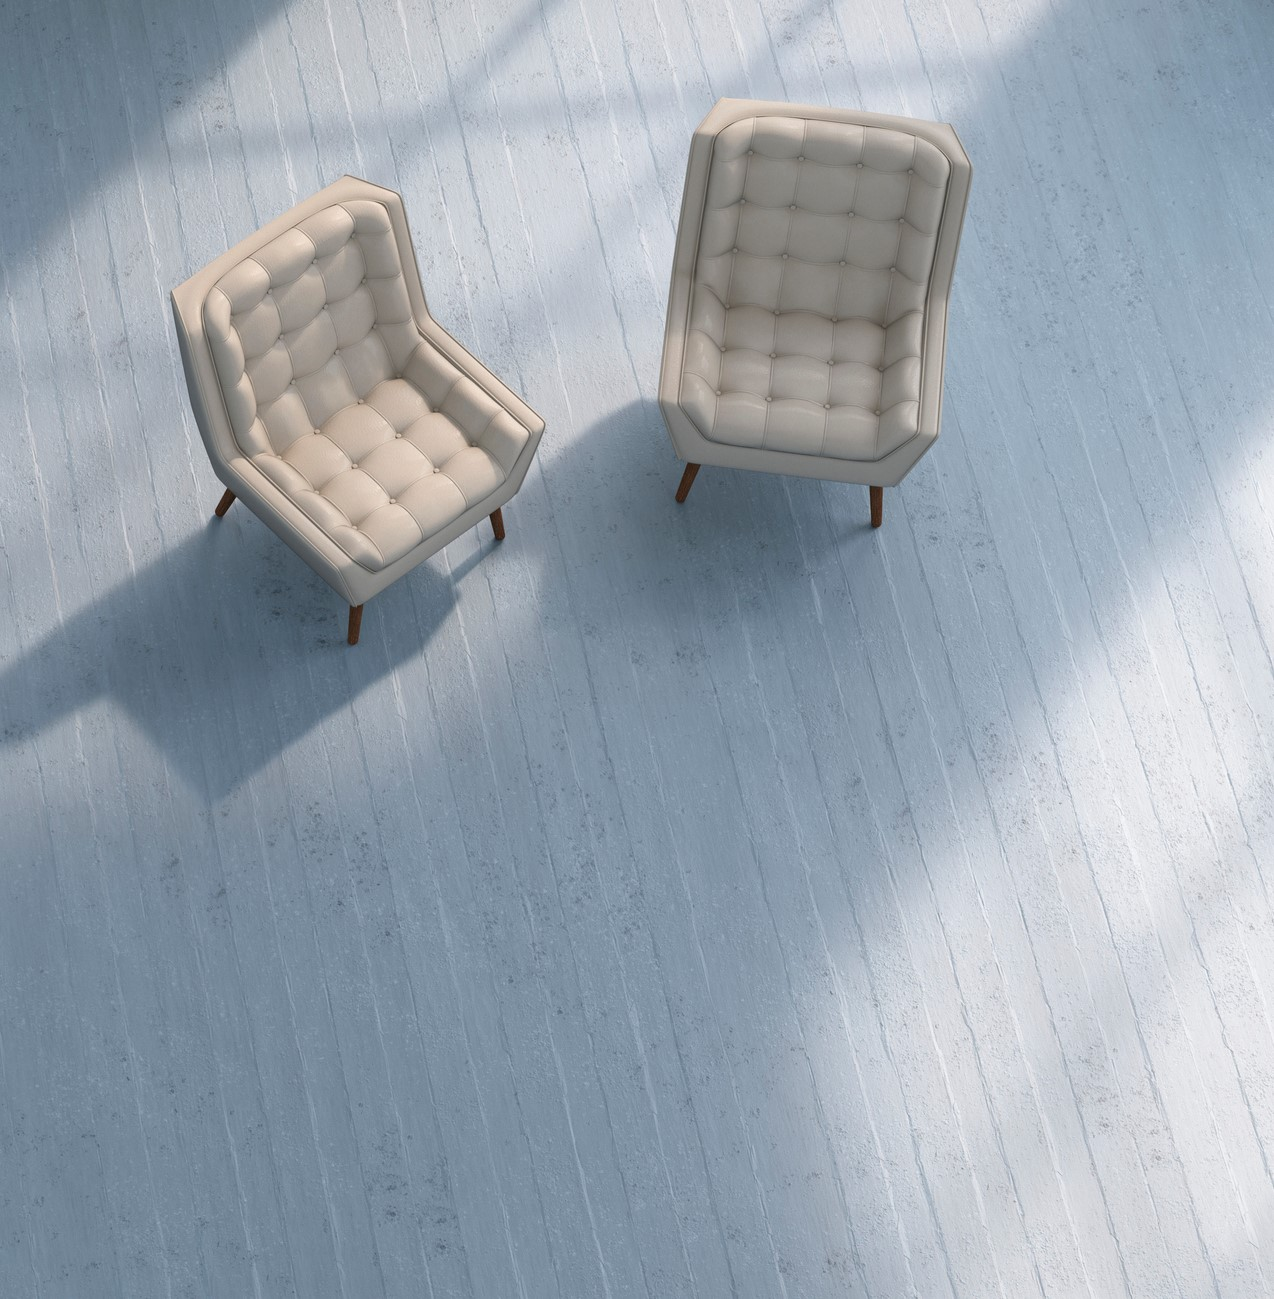 3D rendering, Two chairs on concrete floor